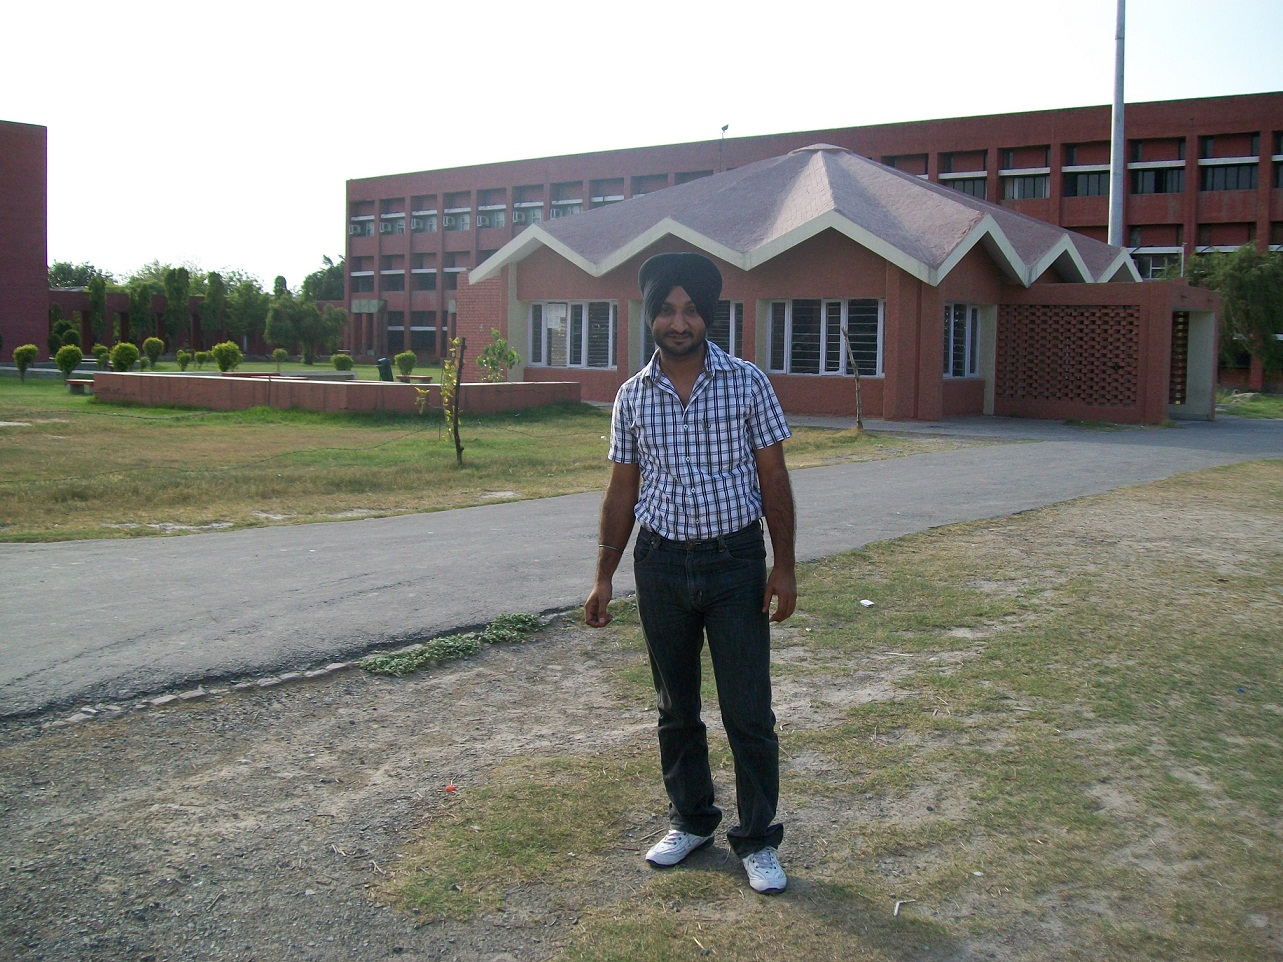 My College pic – Deenbandhu Sir Choturam College of Engg. – Murthal